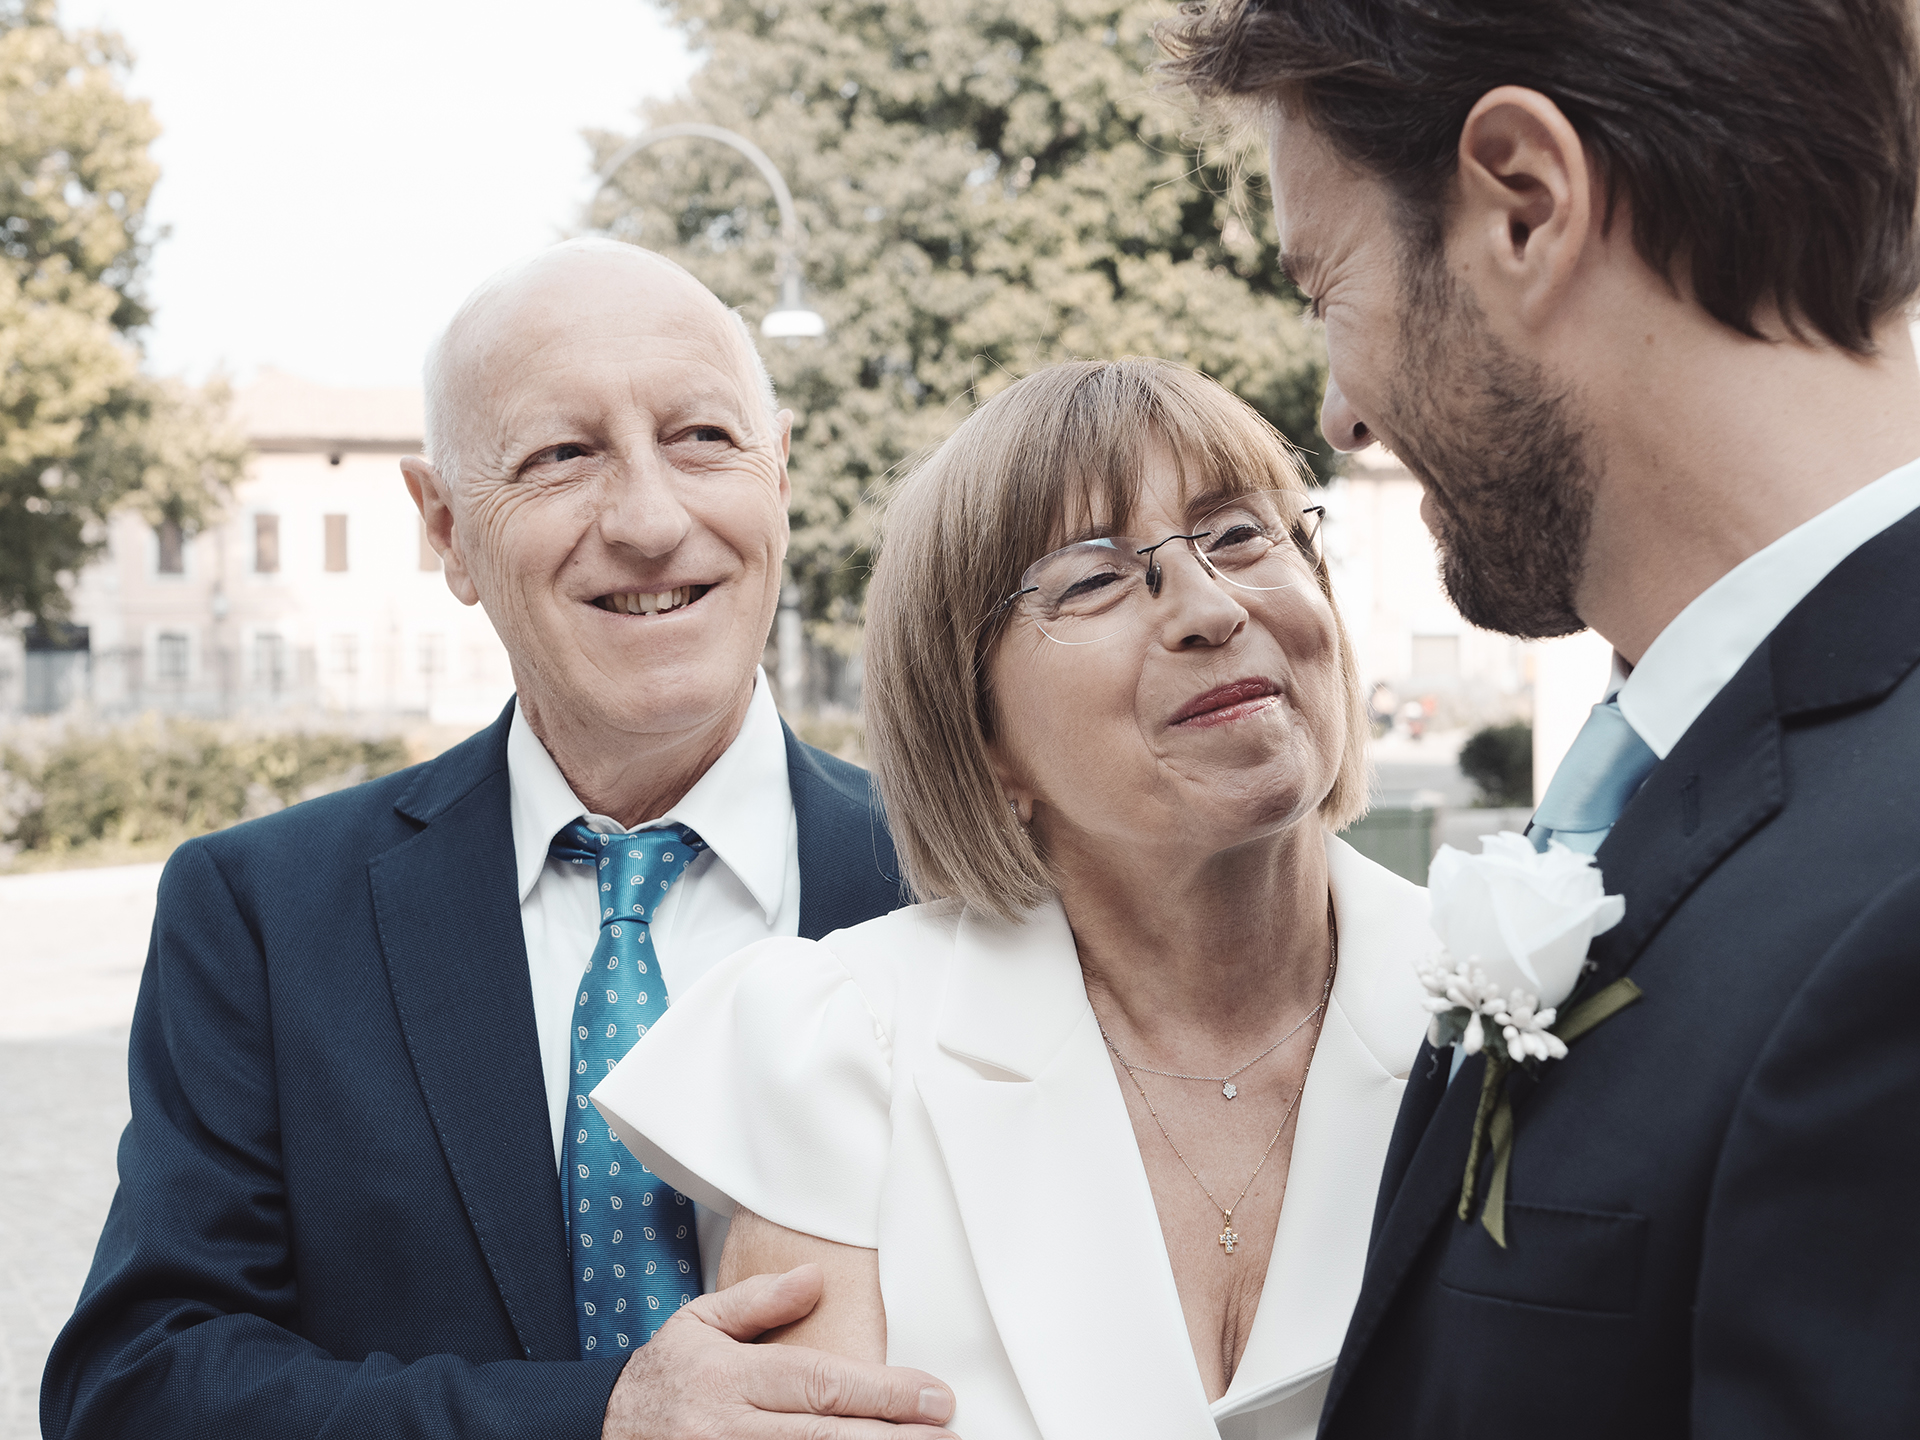 Villa Litta Modigliani elopement reception photography | The groom's parents beam with pride